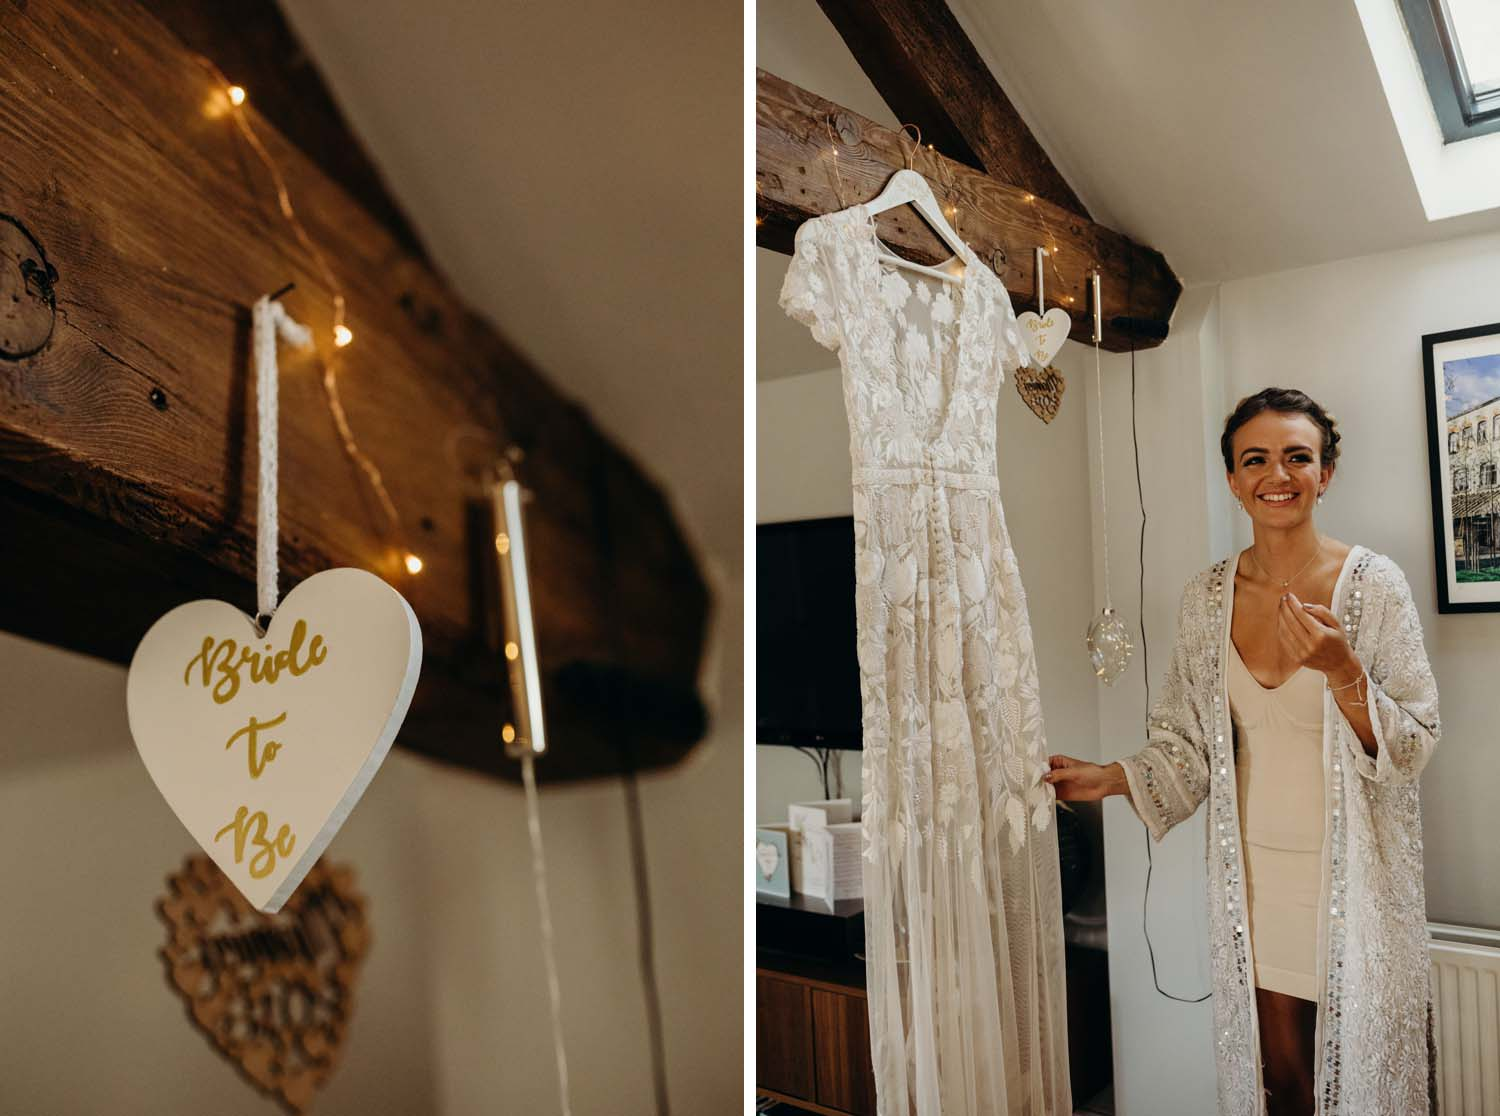 Bride smiling next to wedding dress